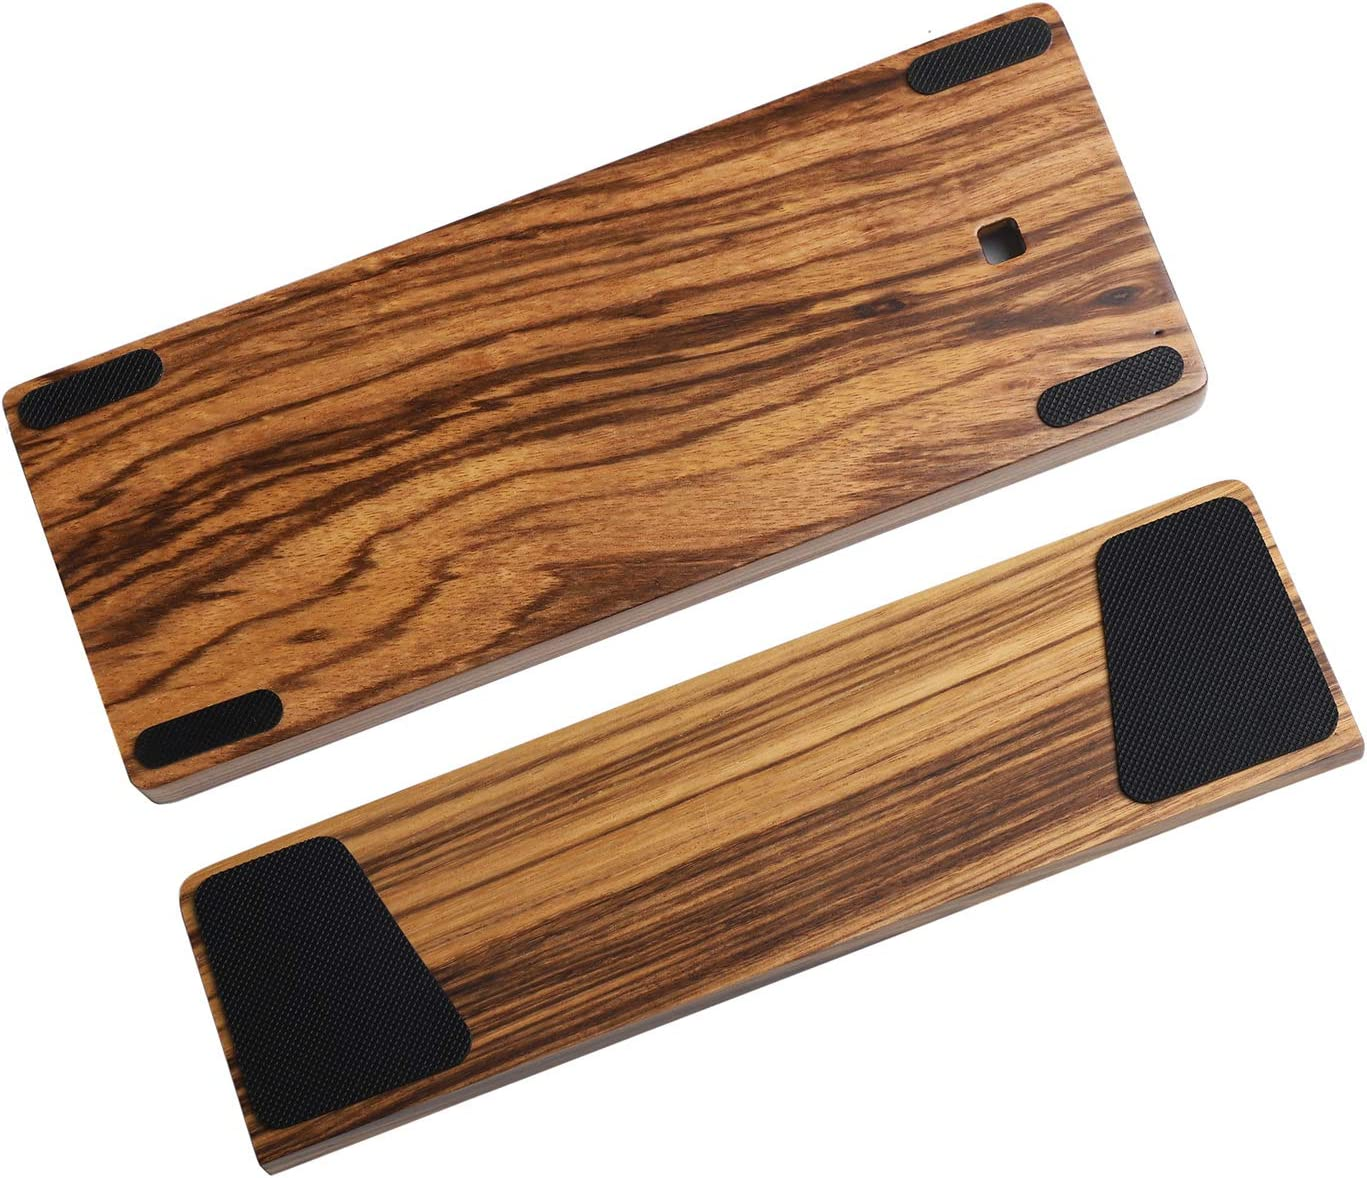 GH60 Solid Wooden Case Wrist Rest for 60% Mini Mechanical Gaming Keyboard Compatible Poker2 Pok3r Faceu 60 (Zebra Wood)